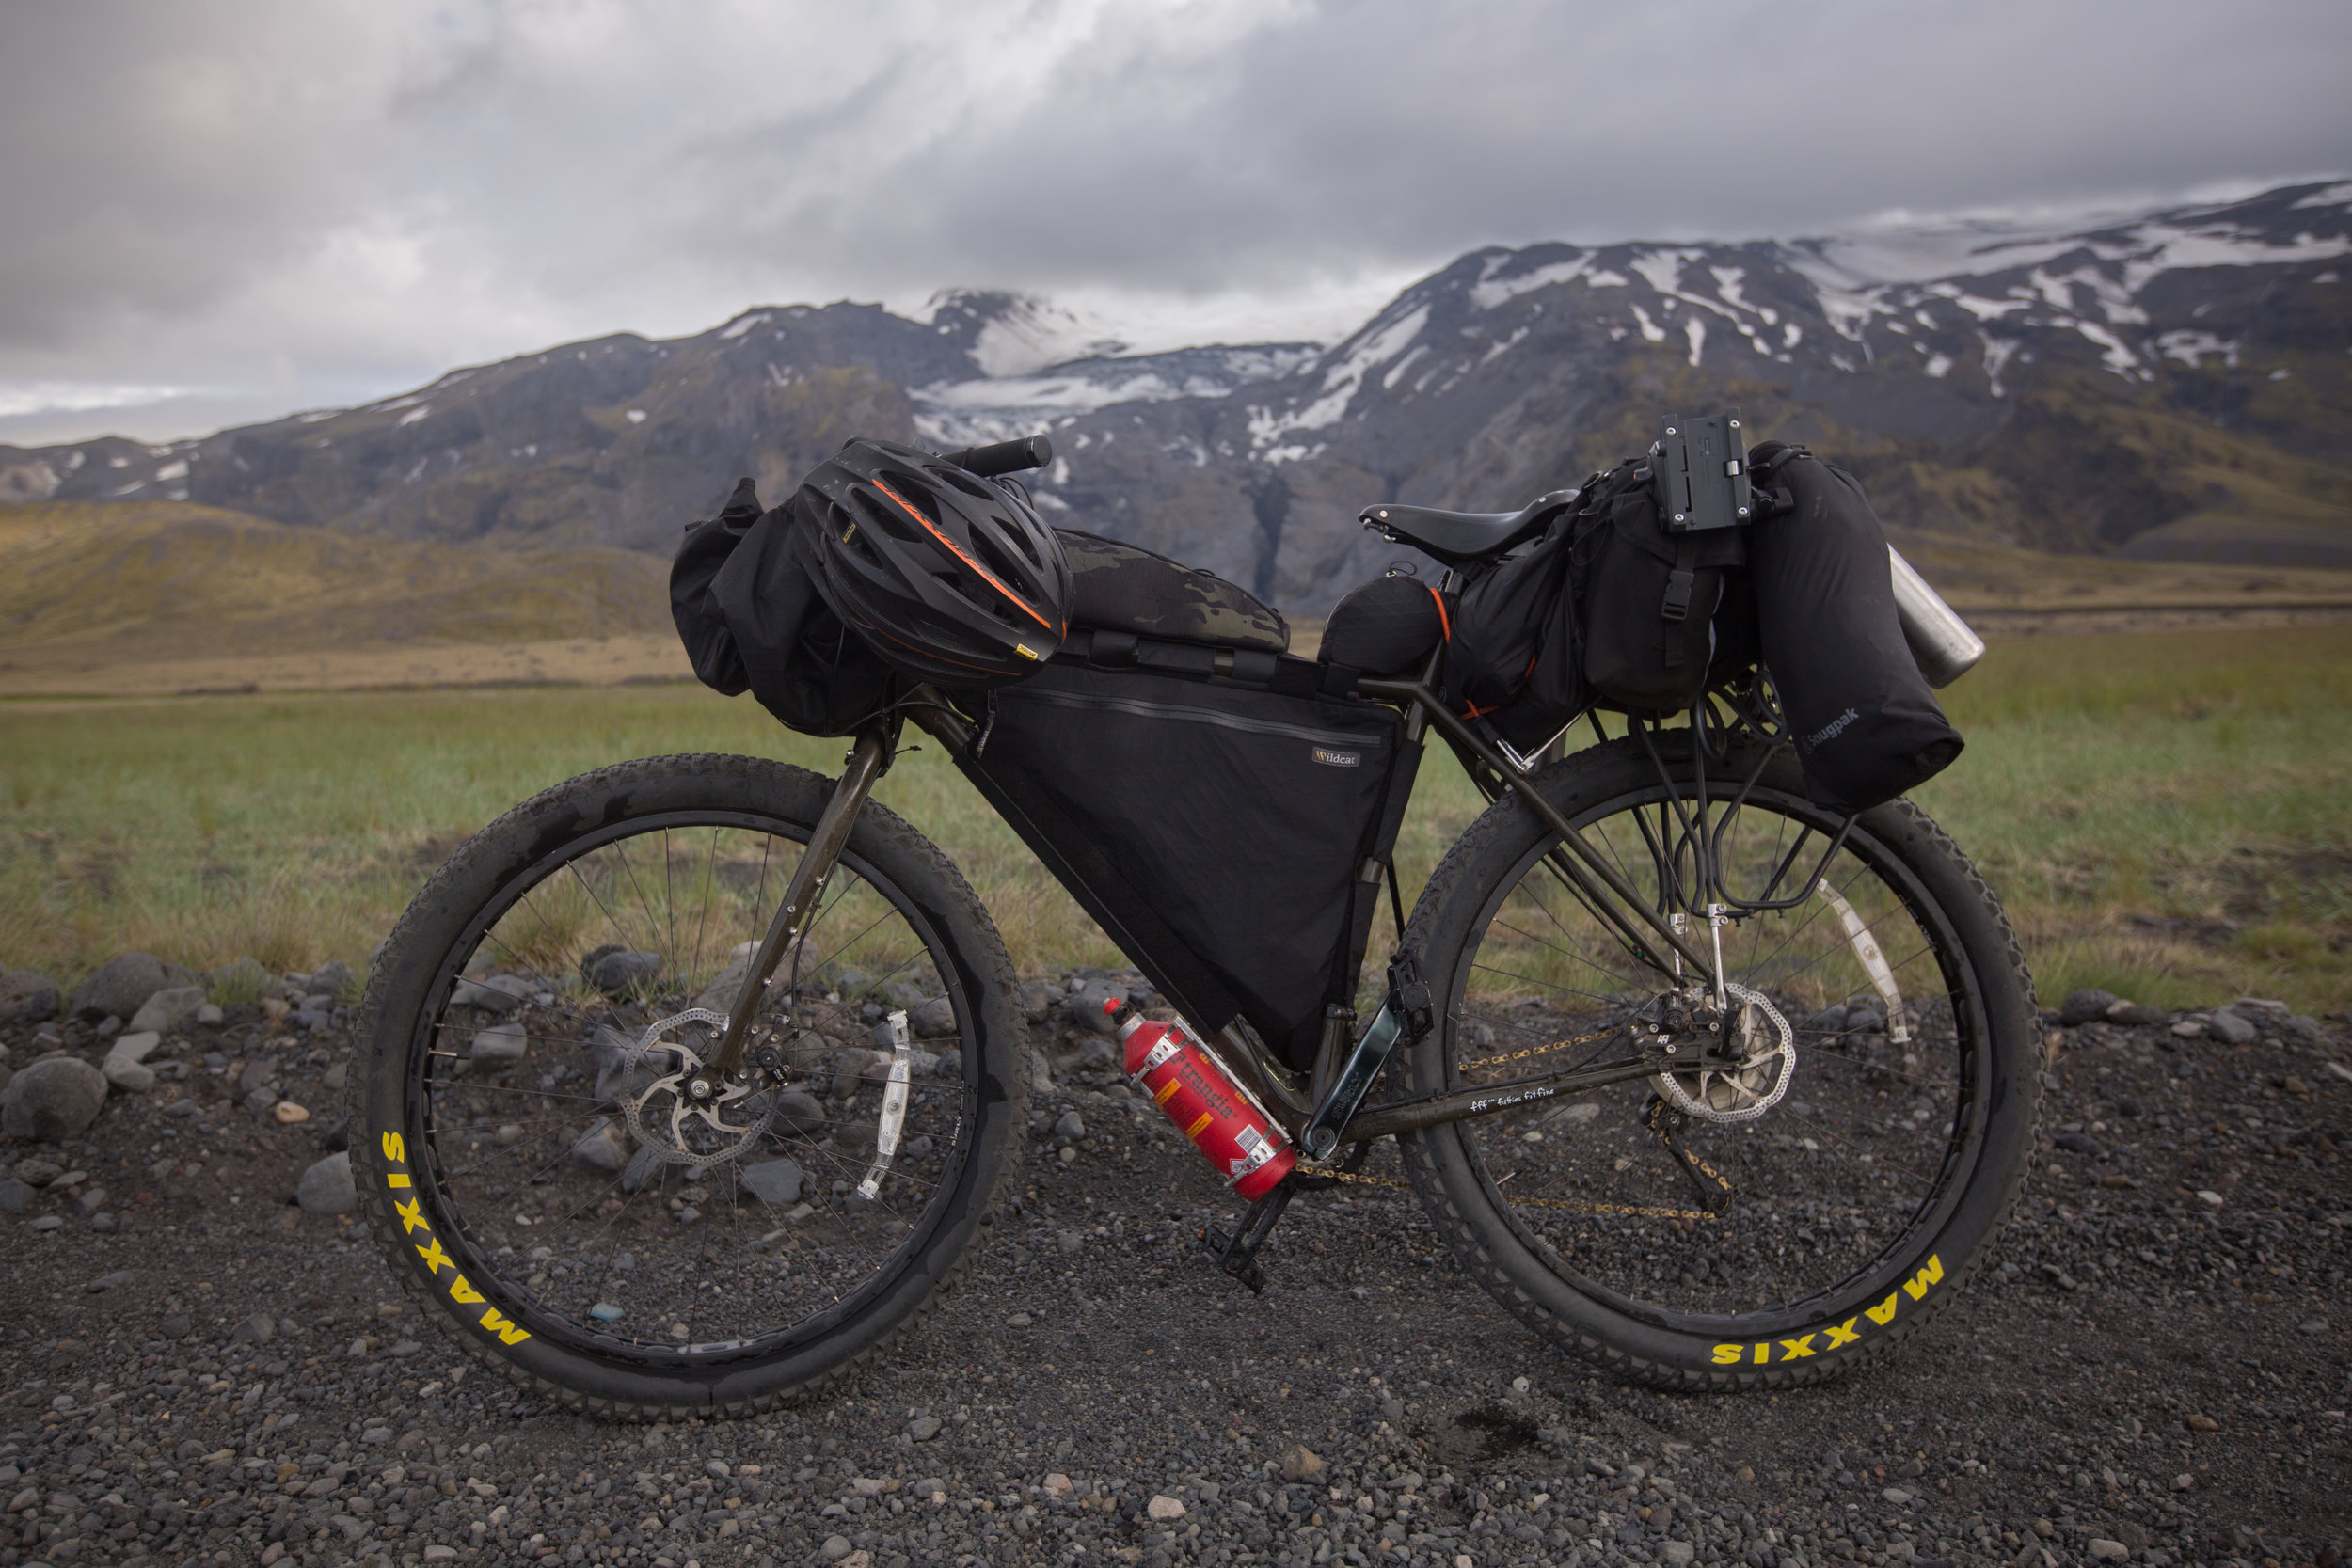 bikepacking, bikepacking blog, bicycle touring, bicycle touring blog, van life, jack mac, jack macgowan, cycling, bicycle, surly, surly bikes, iceland, bikepacking iceland, cycling icealnd, 29er, fat bike, steel frame, bikepacking gear, blog, travel writer, bicycle touring apocalypse, iceland, glacier, iceland glacier